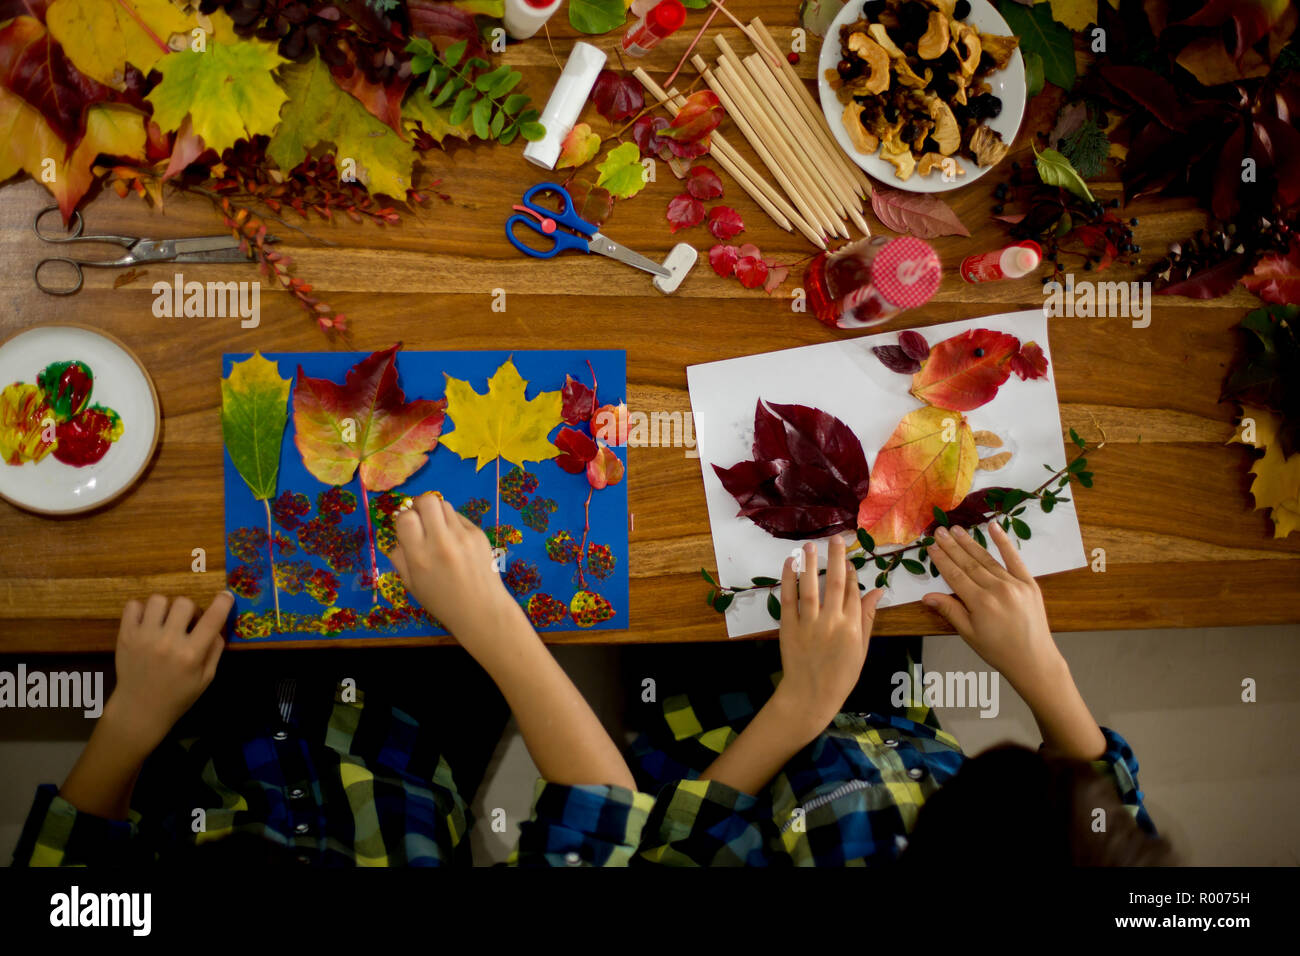 Children, applying leaves using glue, scissors, and paint, while doing arts and crafts in school, autumntime - Stock Image